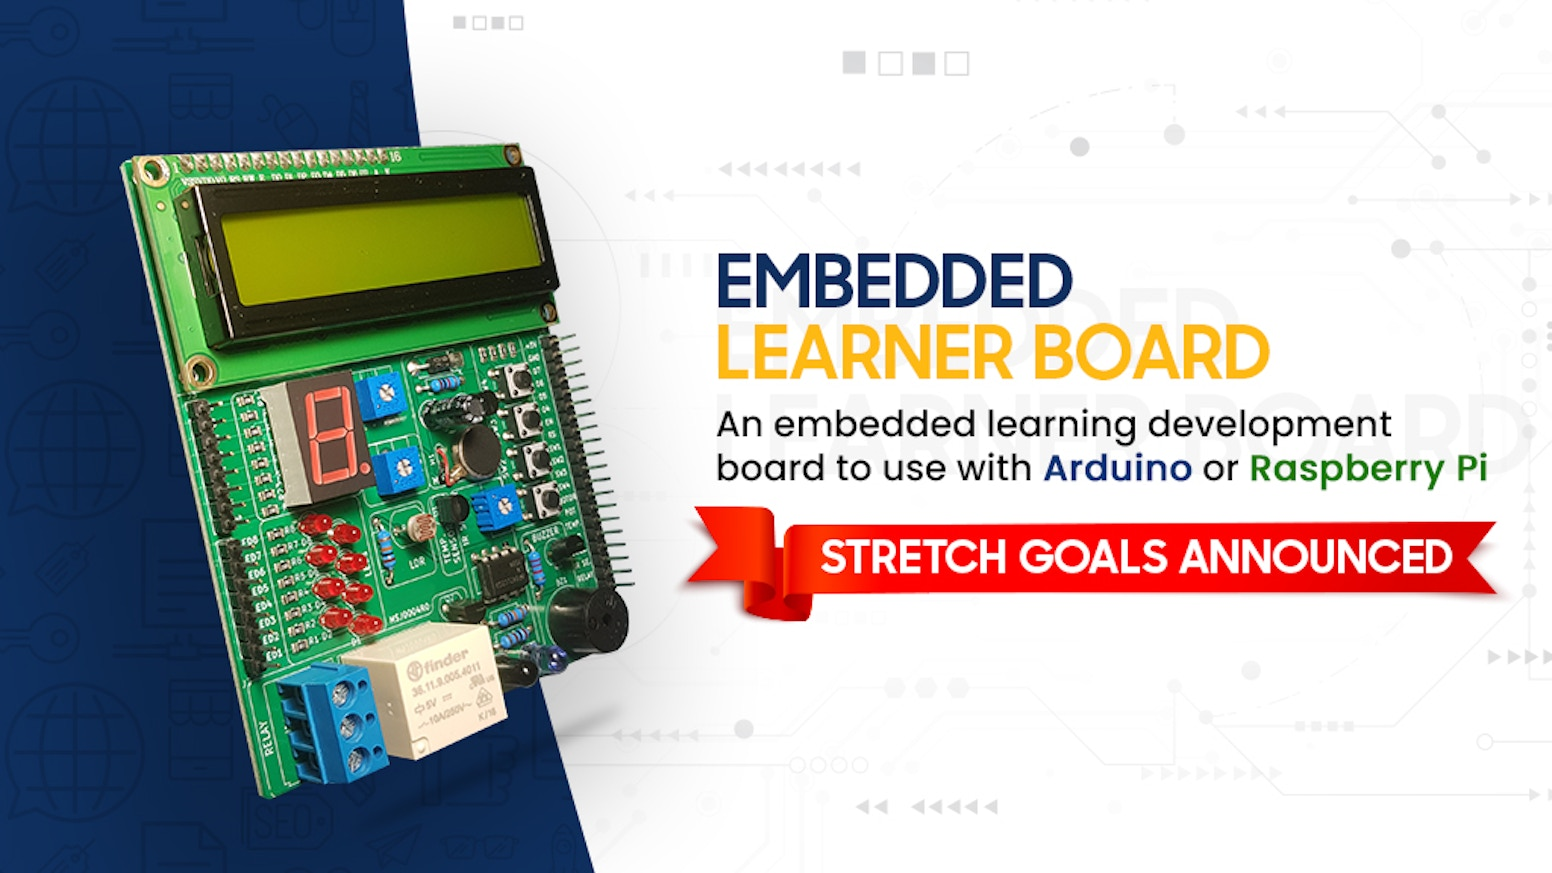 An embedded learning development board to use with Arduino or Raspberry Pi